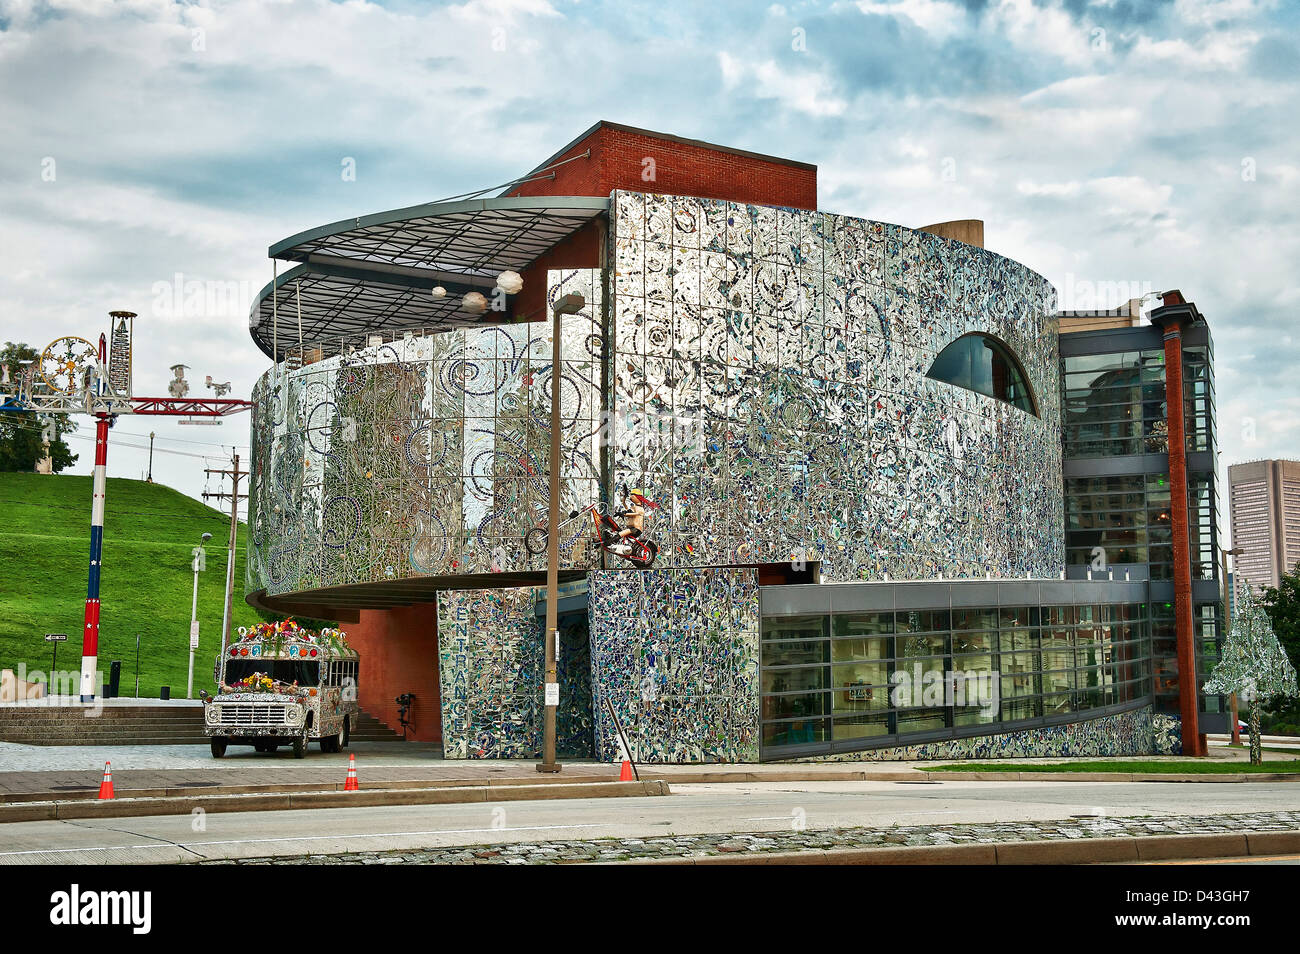 American Visionary Art Museum, Baltimore, Maryland, USA. - Stock Image